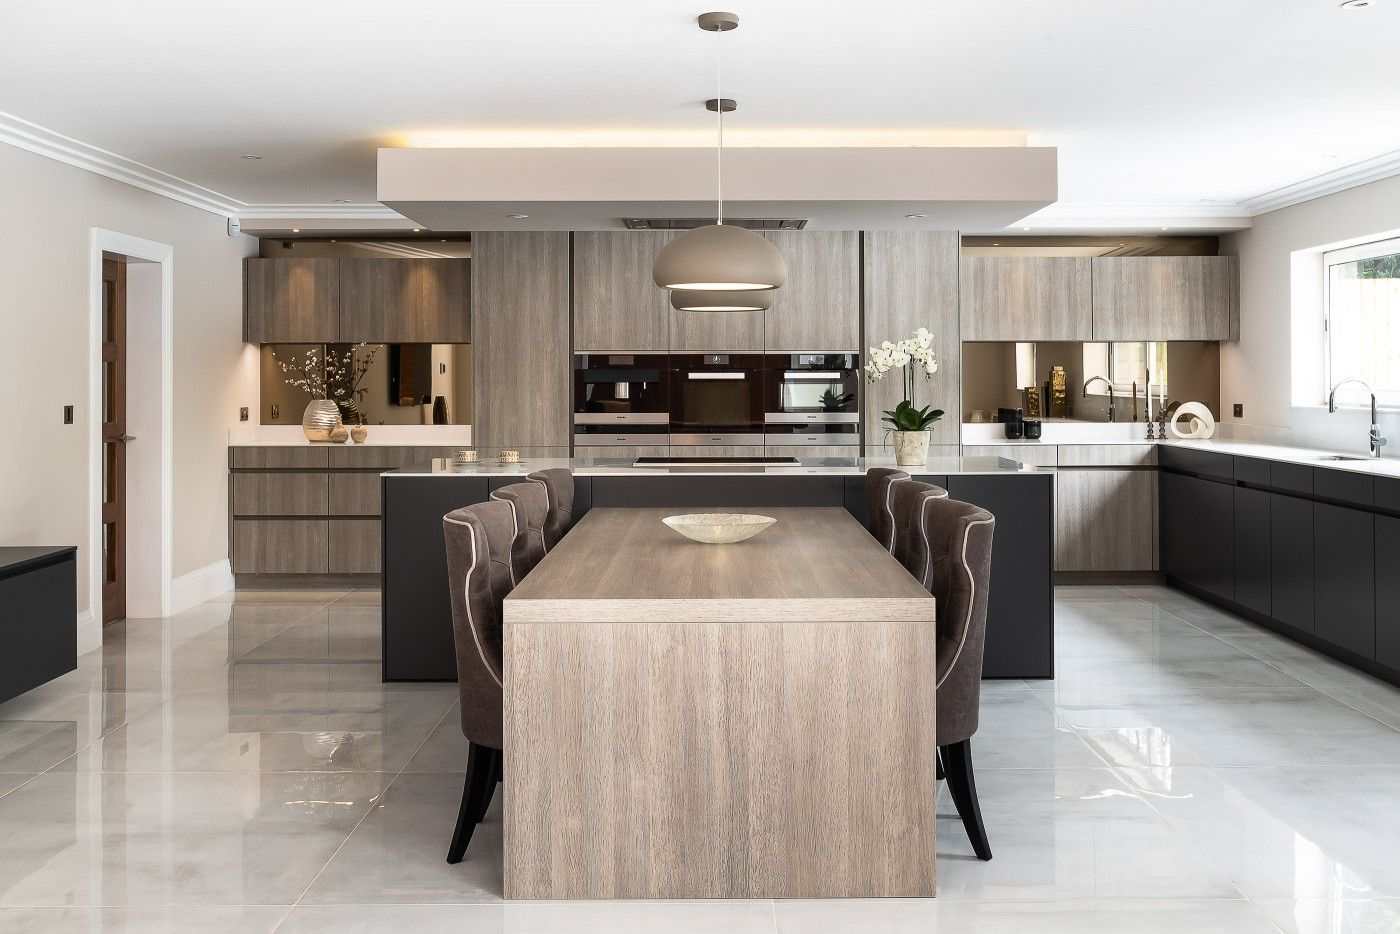 Large Family Kitchen Contemporary Kitchen Modern Kitchen With A T Shape Island And Modern Kitchen Island Design Modern Kitchen Contemporary Kitchen Layouts